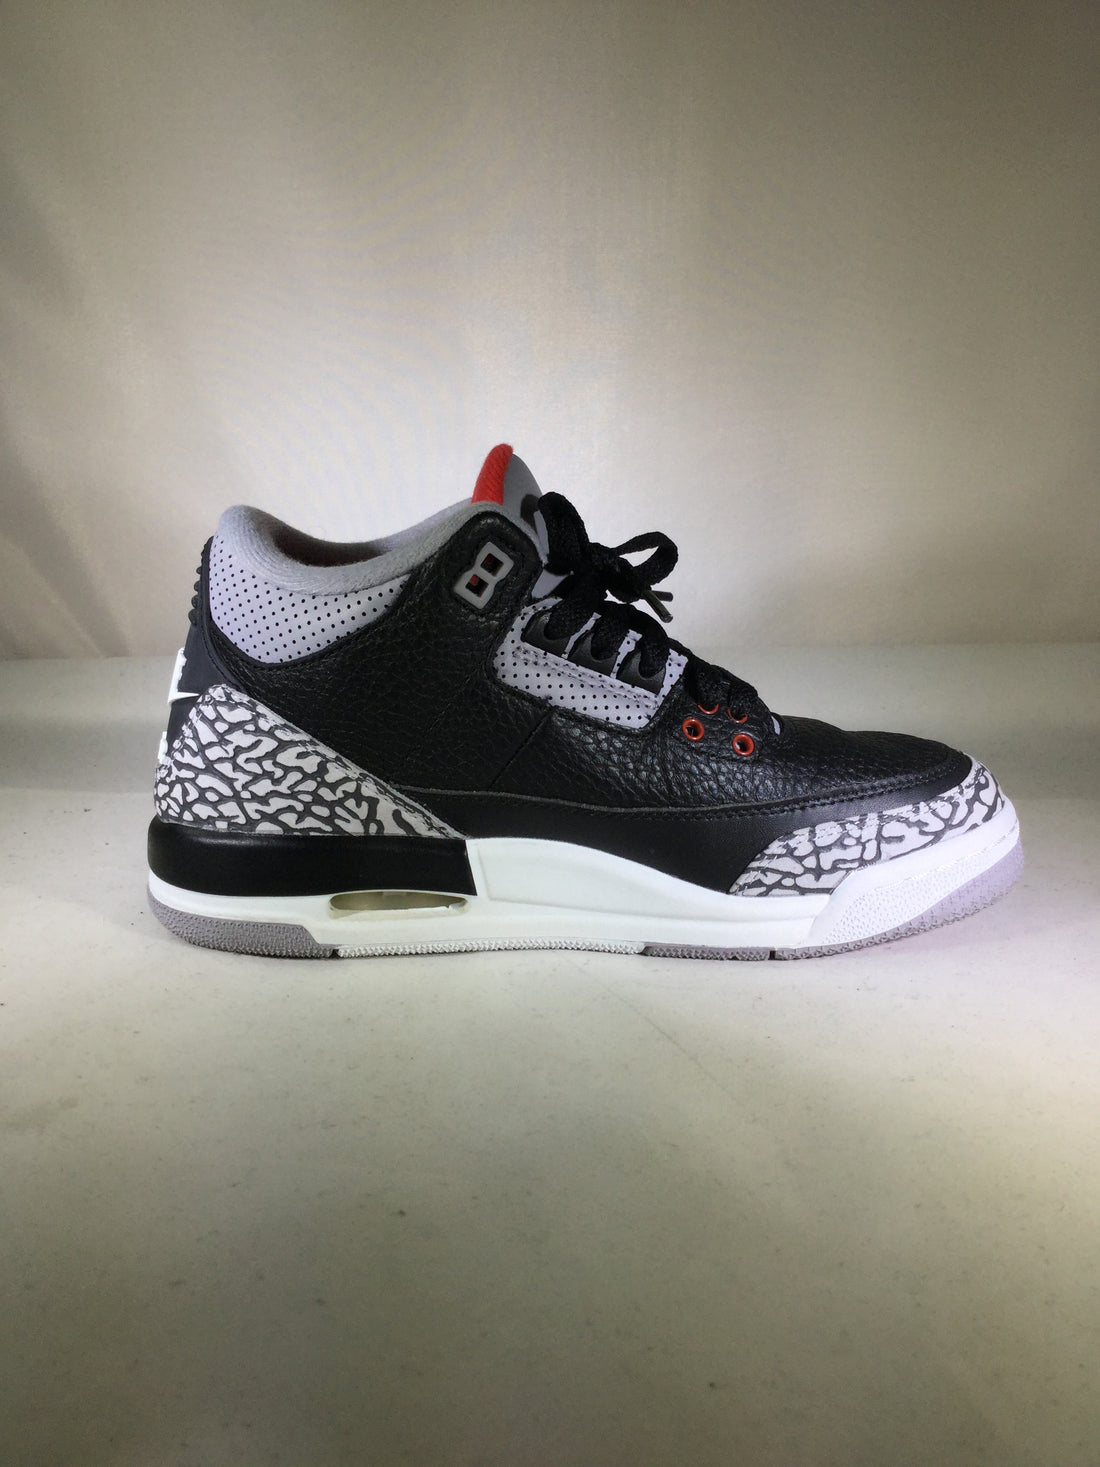 "Jordan 3 Retro ""Black Cement"" (2018) GS - 854261-001"